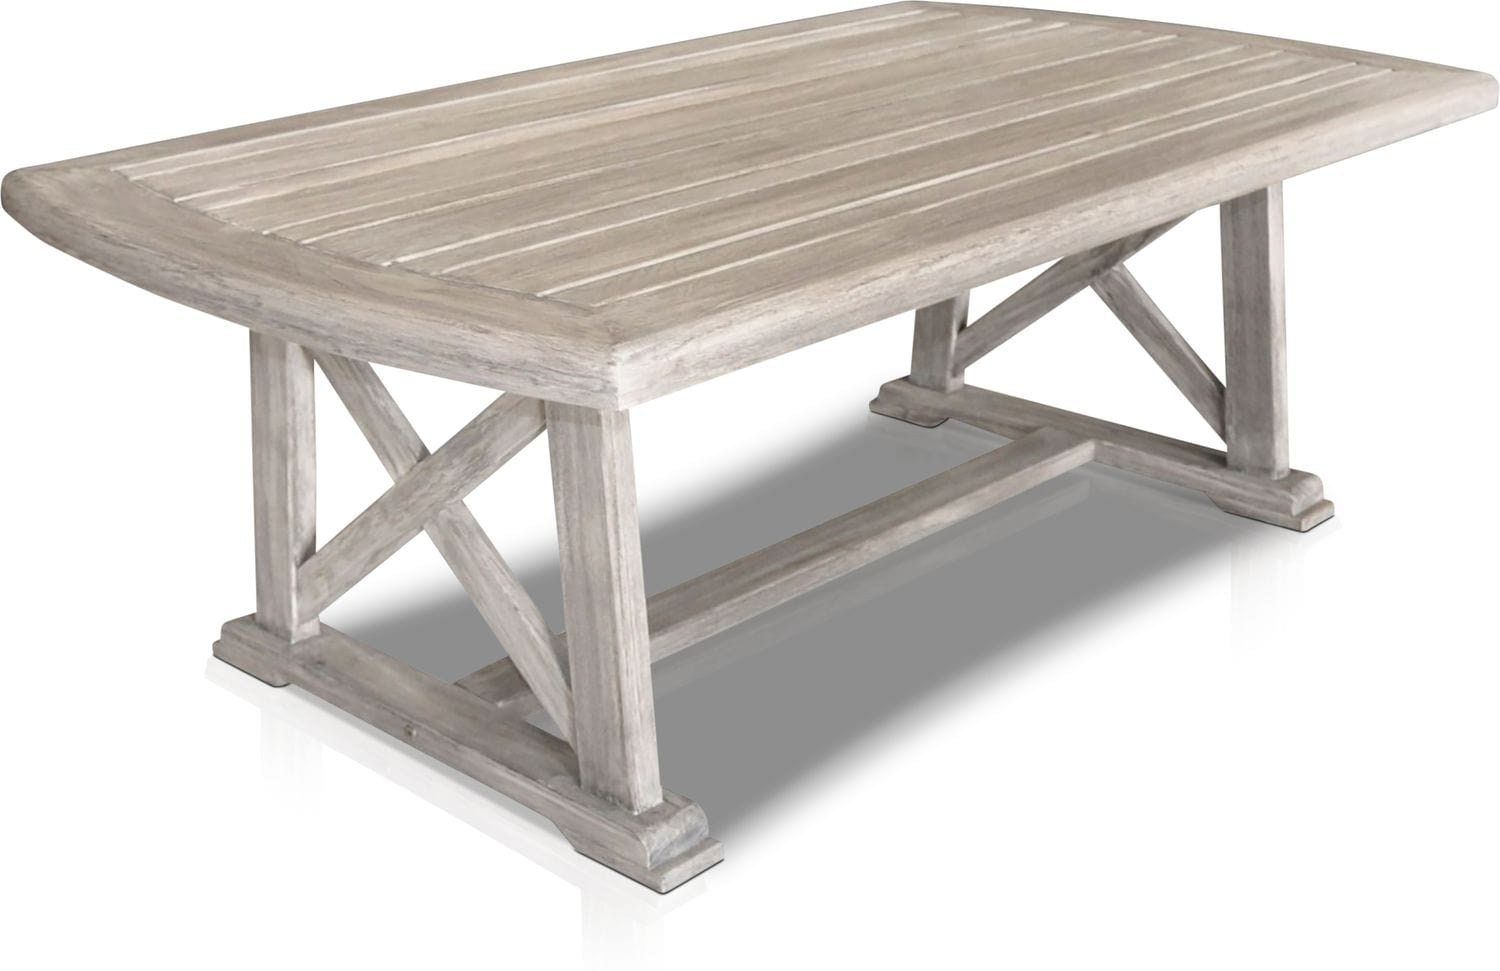 Outdoor Furniture - Marshall Outdoor Coffee Table